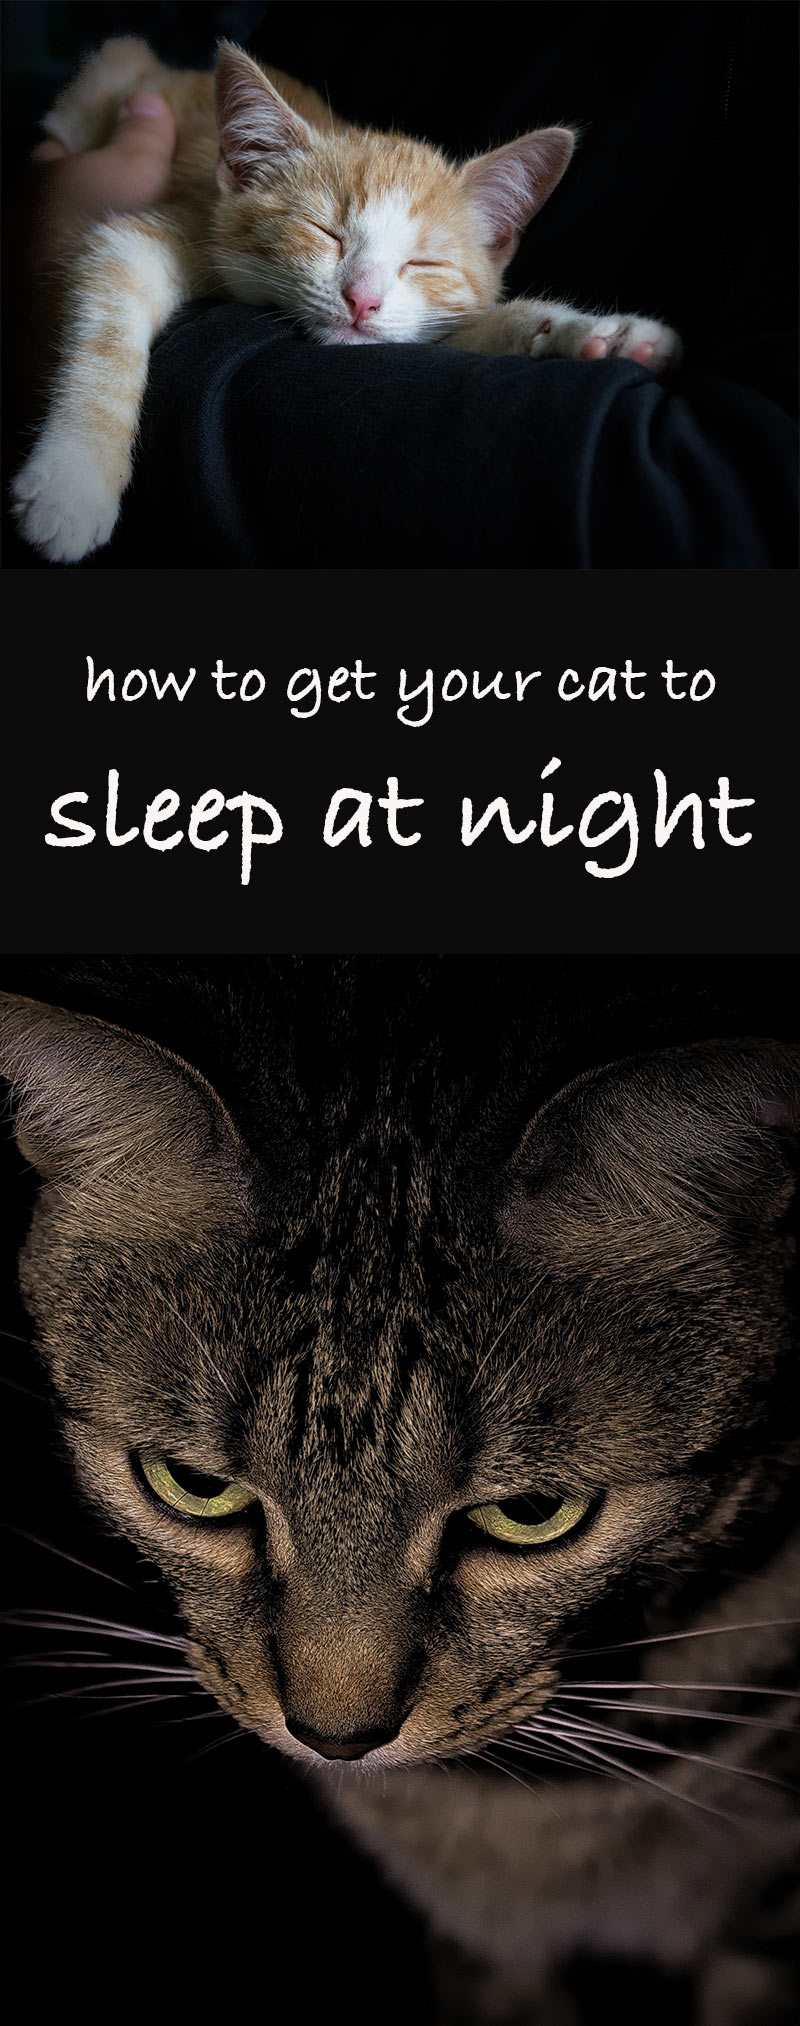 how to get your cat to sleep at night